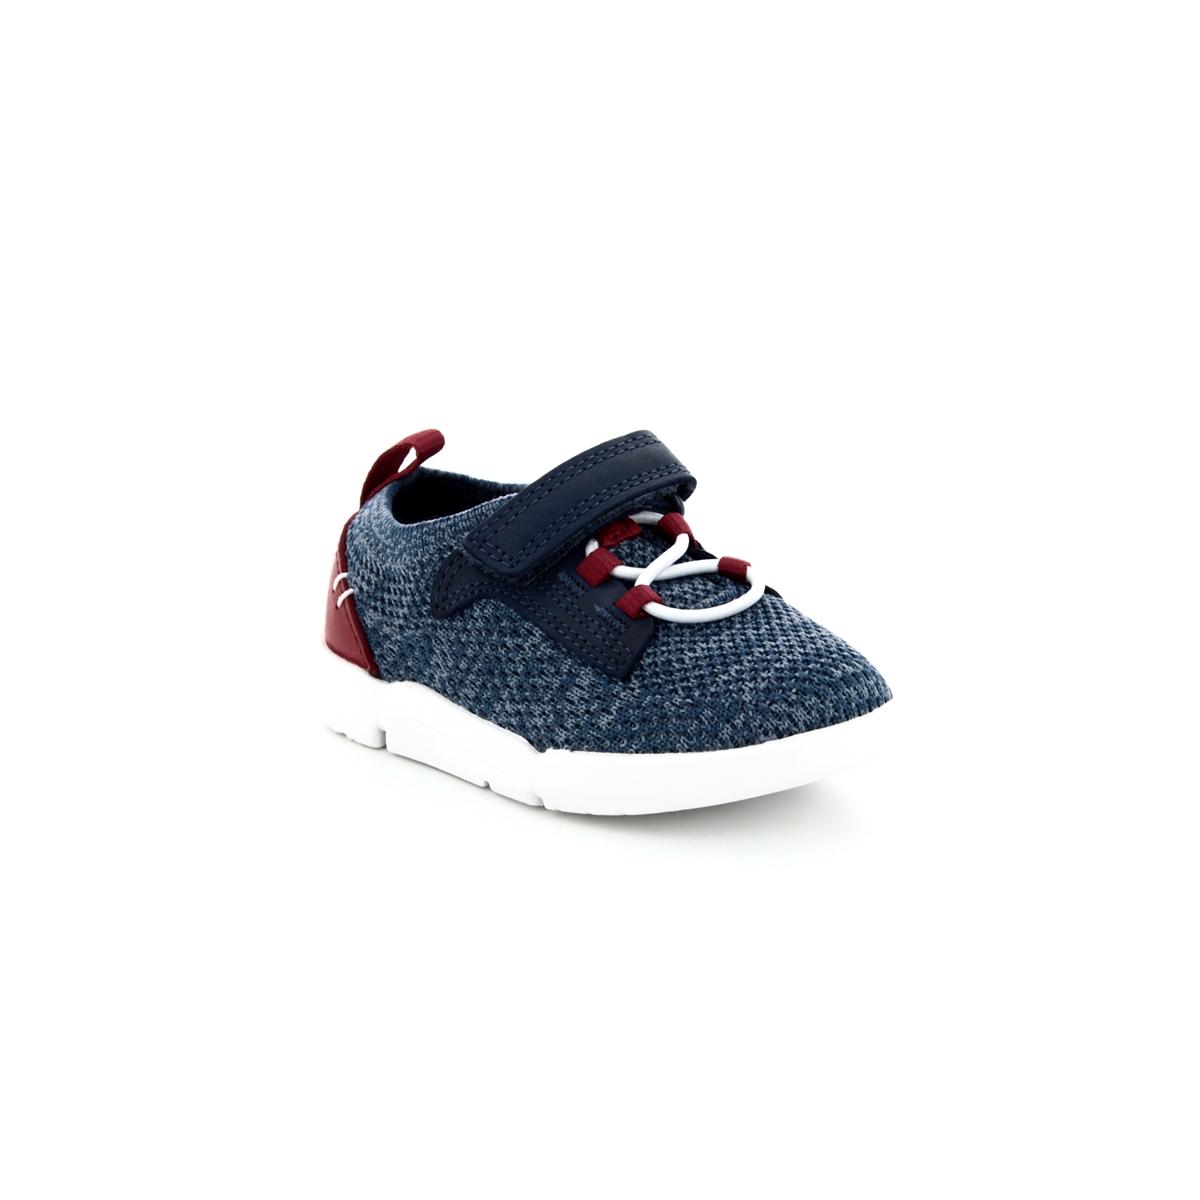 0d19a998c00ef Clarks First Shoes - Blue multi - 3770/07G TRI HERO